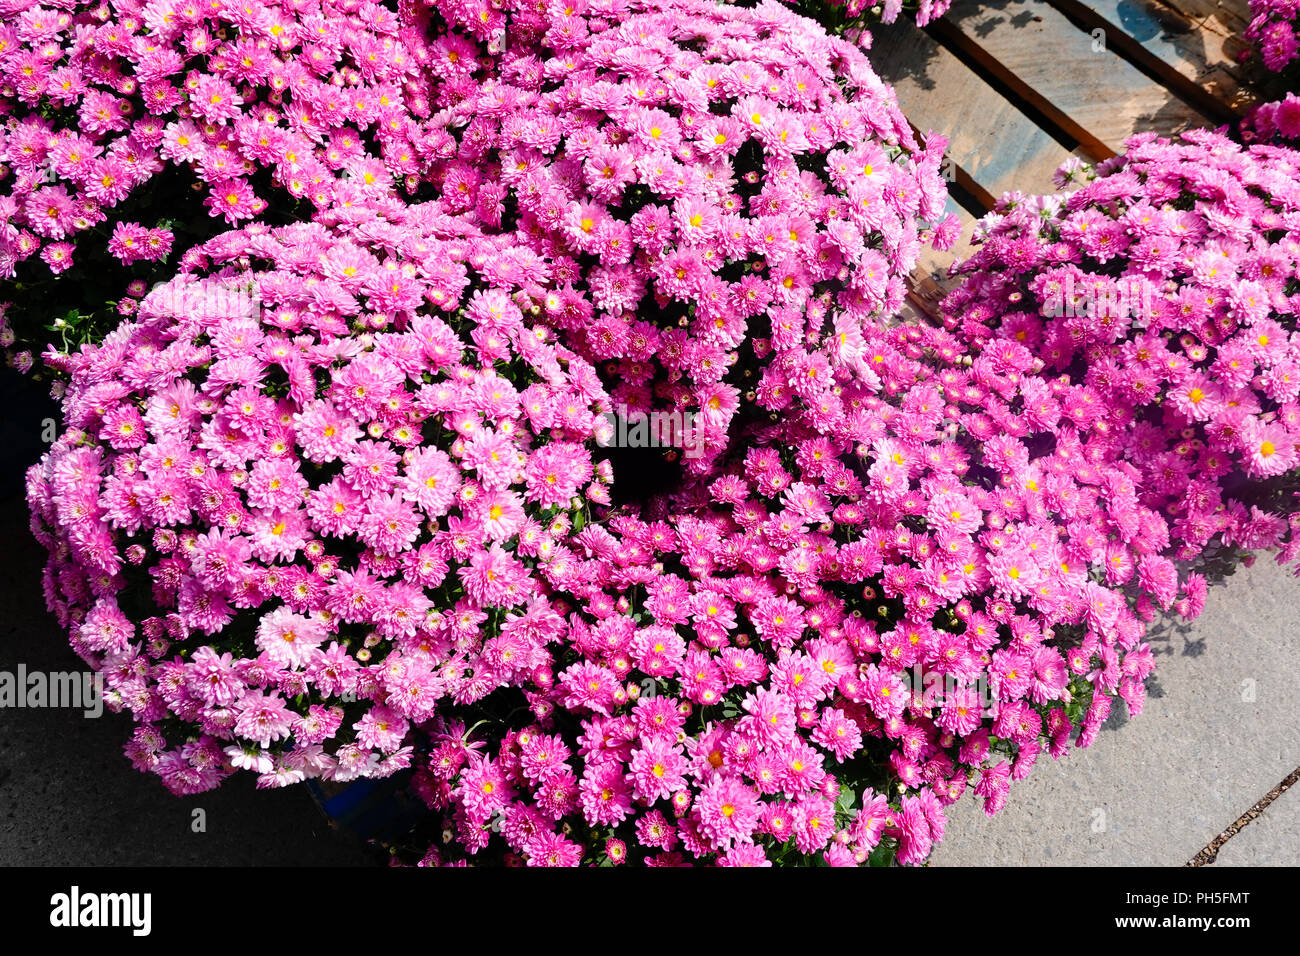 Potted violet garden mums for sale at a Montreal supermarket - Stock Image